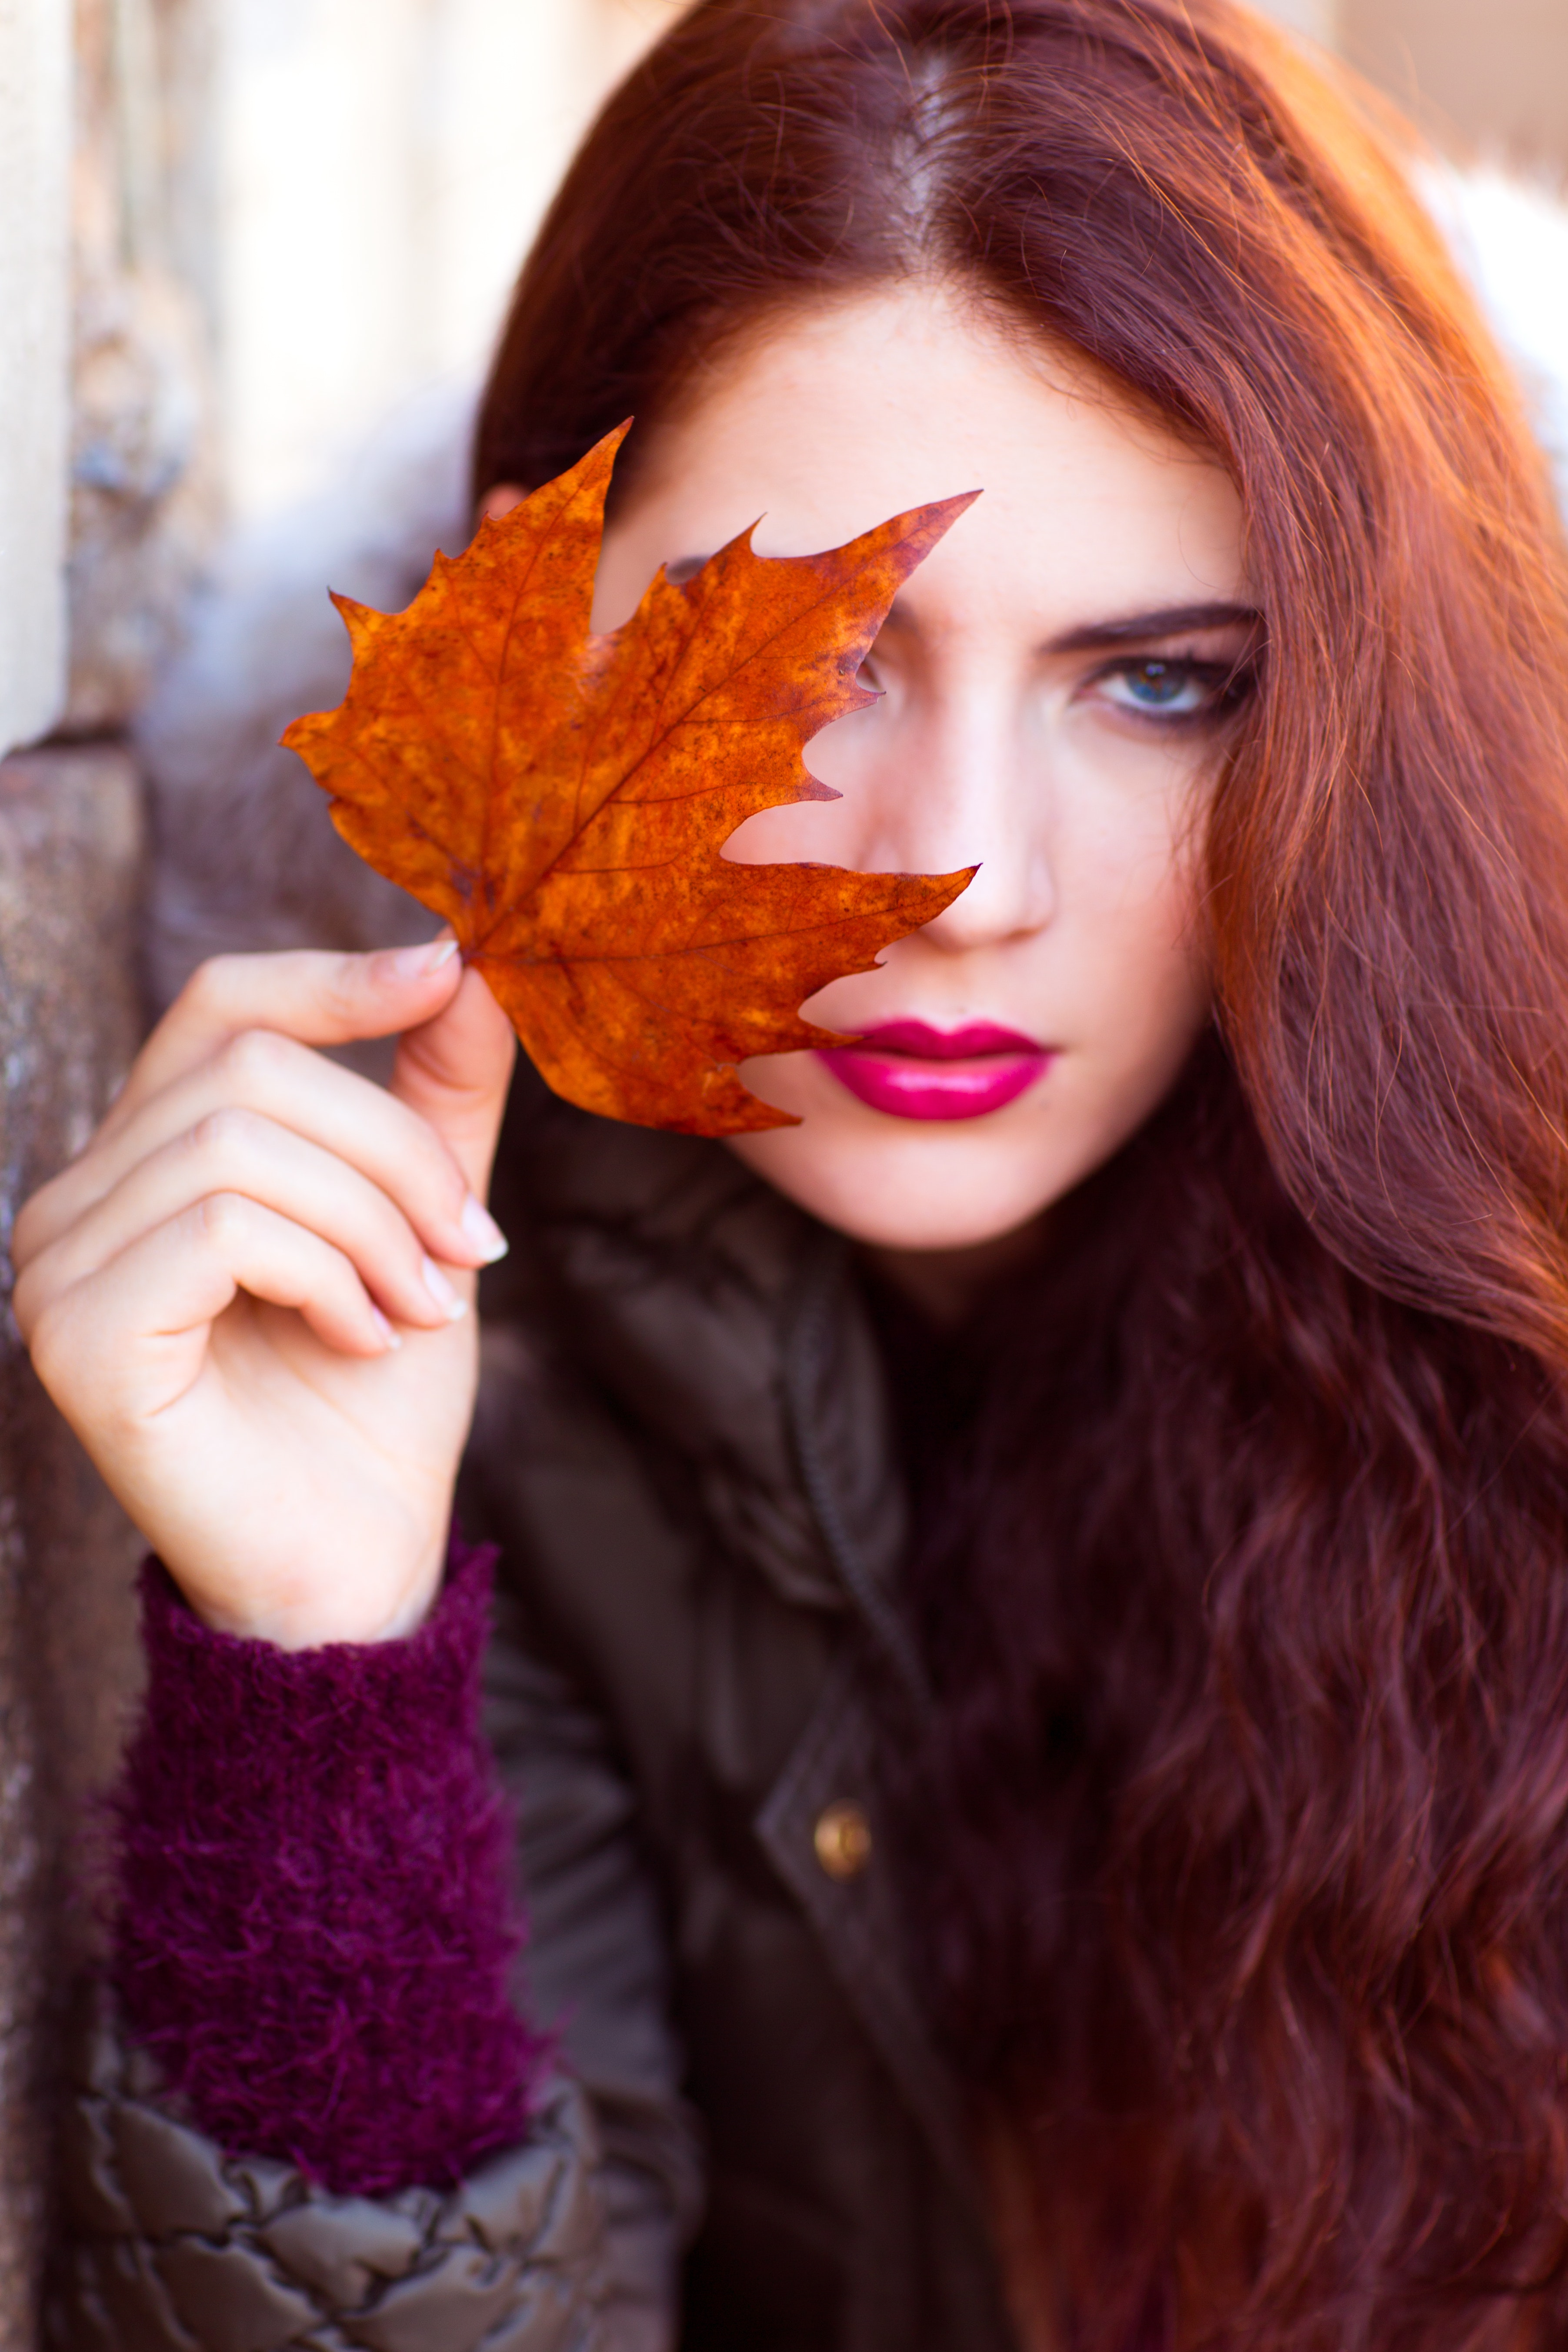 Woman Wearing Black Zip-up Jacket Holding Brown Maple Leaf, Adult, Lips, Woman, Wear, HQ Photo